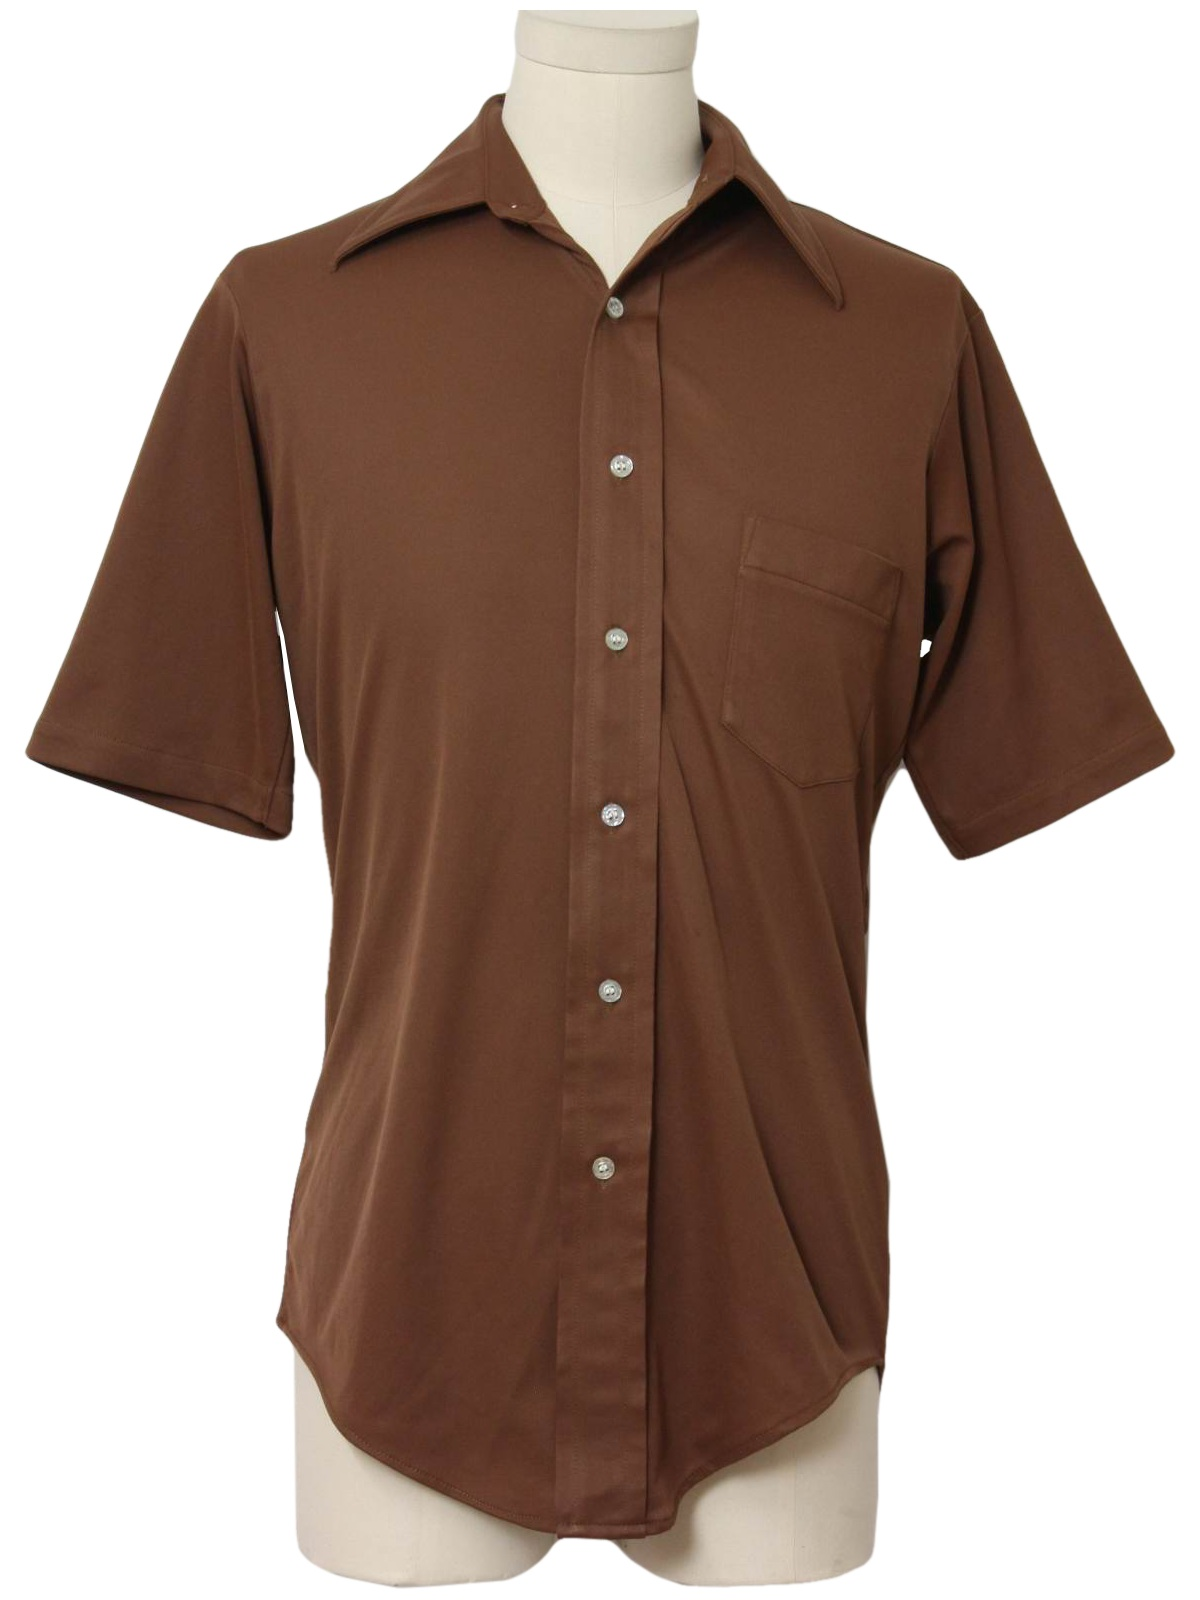 Vintage 1970 39 s disco shirt 70s van heusen splendor mens for Mens chocolate brown shirt